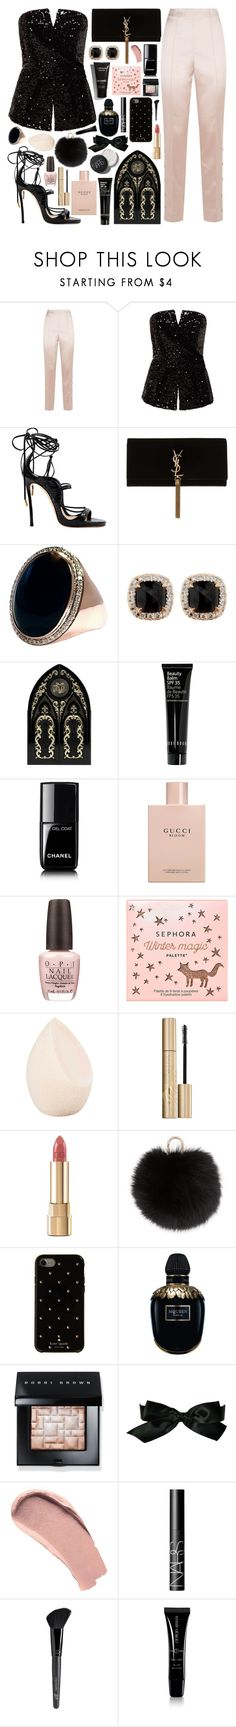 """#PolyPresents: Fancy Pants"" by douxlaur ❤ liked on Polyvore featuring St. John, Dsquared2, Yves Saint Laurent, Jona, Kat Von D, Chanel, Gucci, OPI, Sephora Collection and Christian Dior"